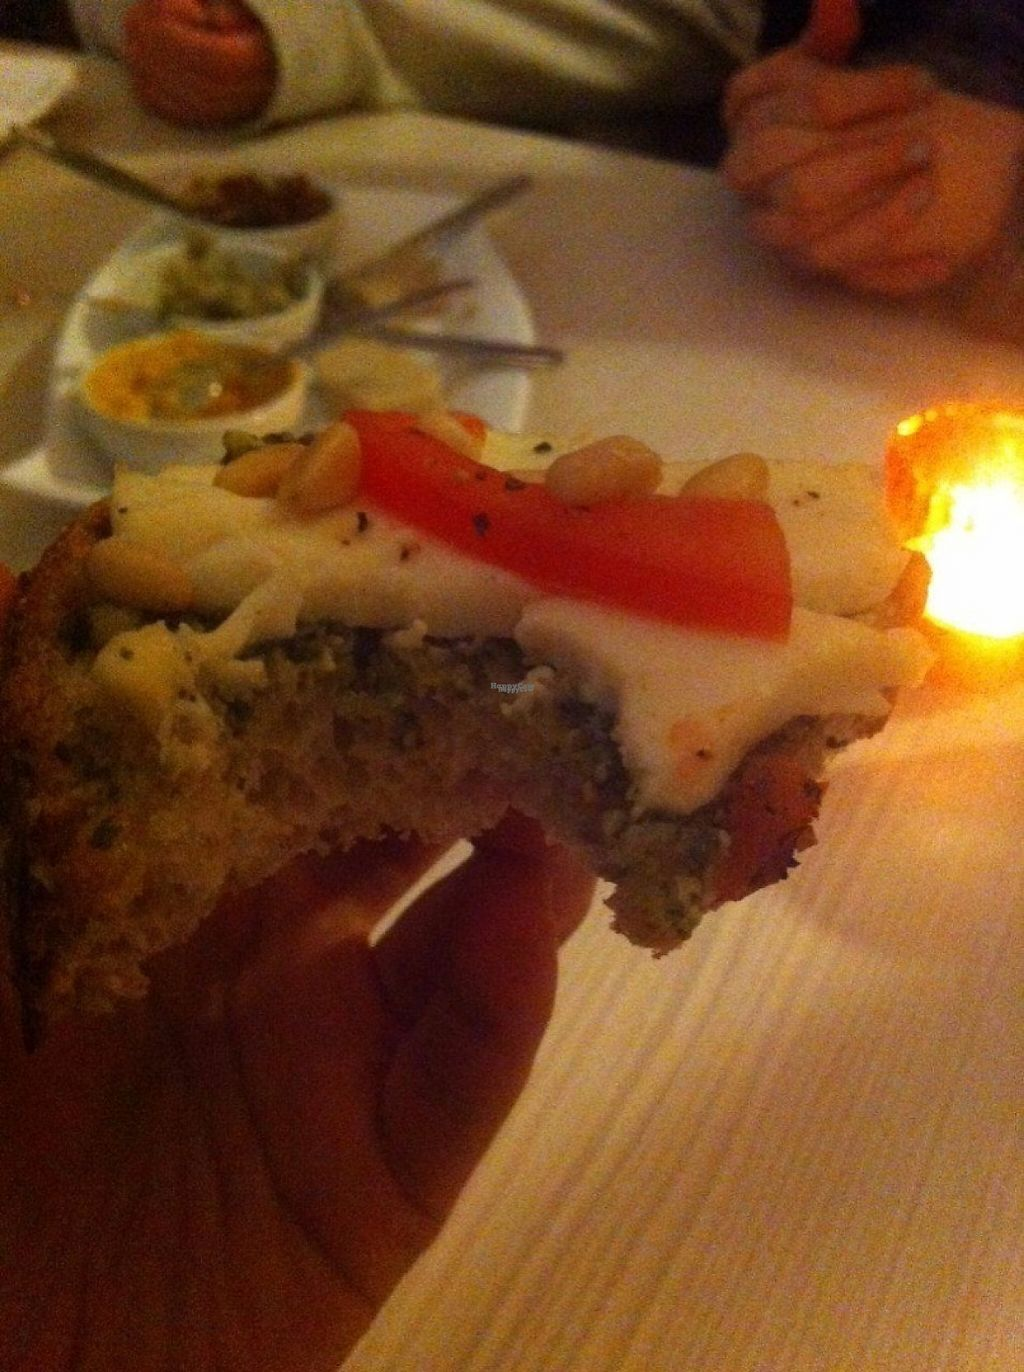 """Photo of Daantje  by <a href=""""/members/profile/Sternanis"""">Sternanis</a> <br/>Bruschetta. Tasty with pesto & homemade mozzarella! <br/> January 10, 2017  - <a href='/contact/abuse/image/58152/210513'>Report</a>"""